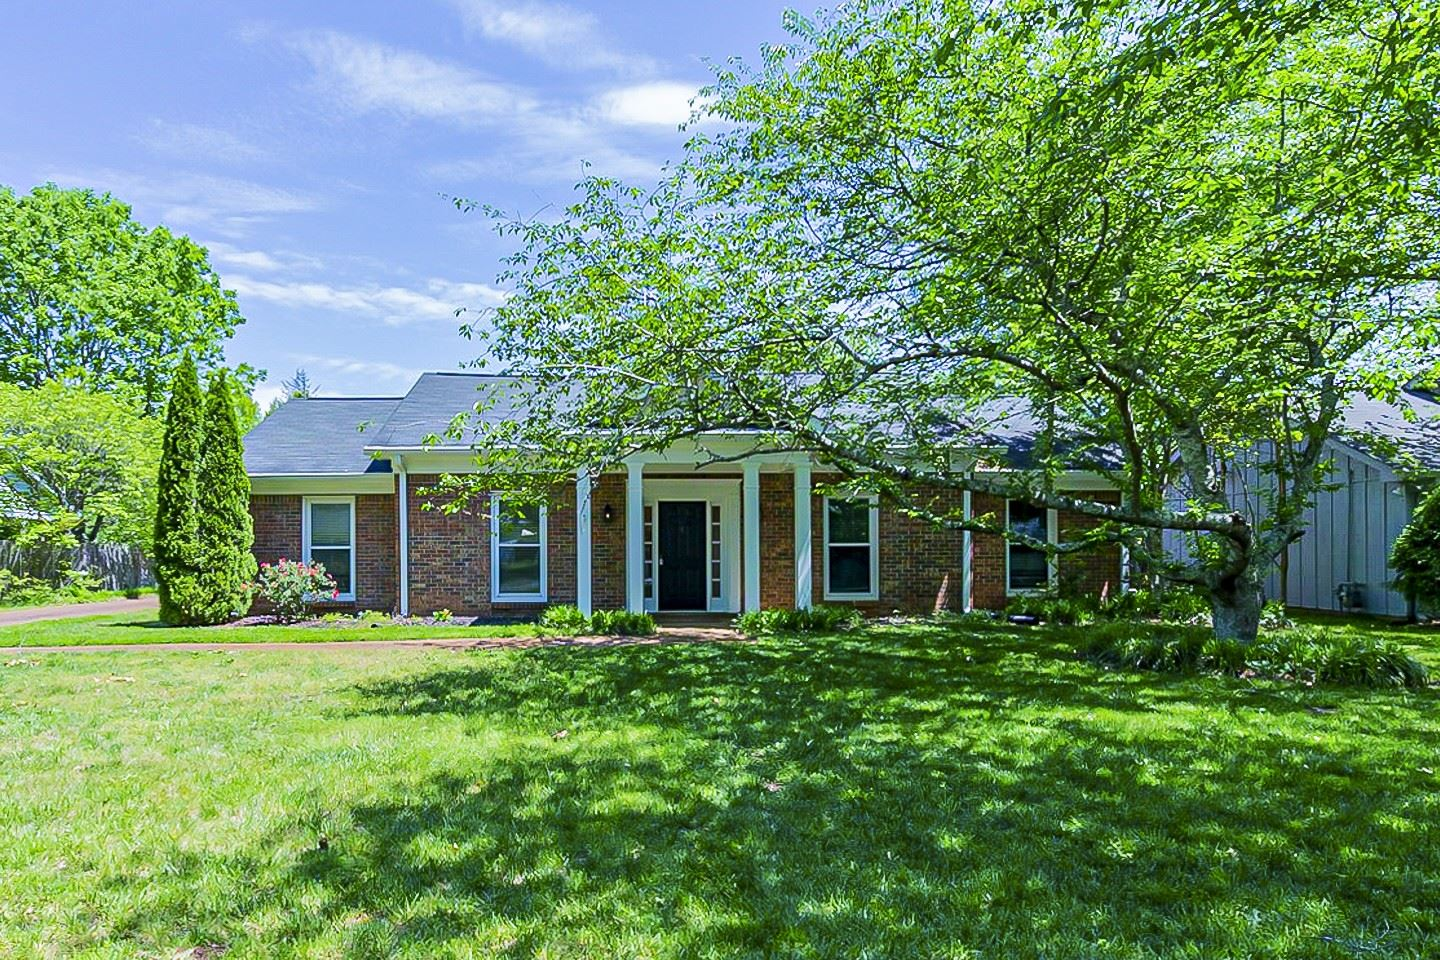 Photo of 1022 Boxwood Dr, Franklin, TN 37069 (MLS # 2253057)